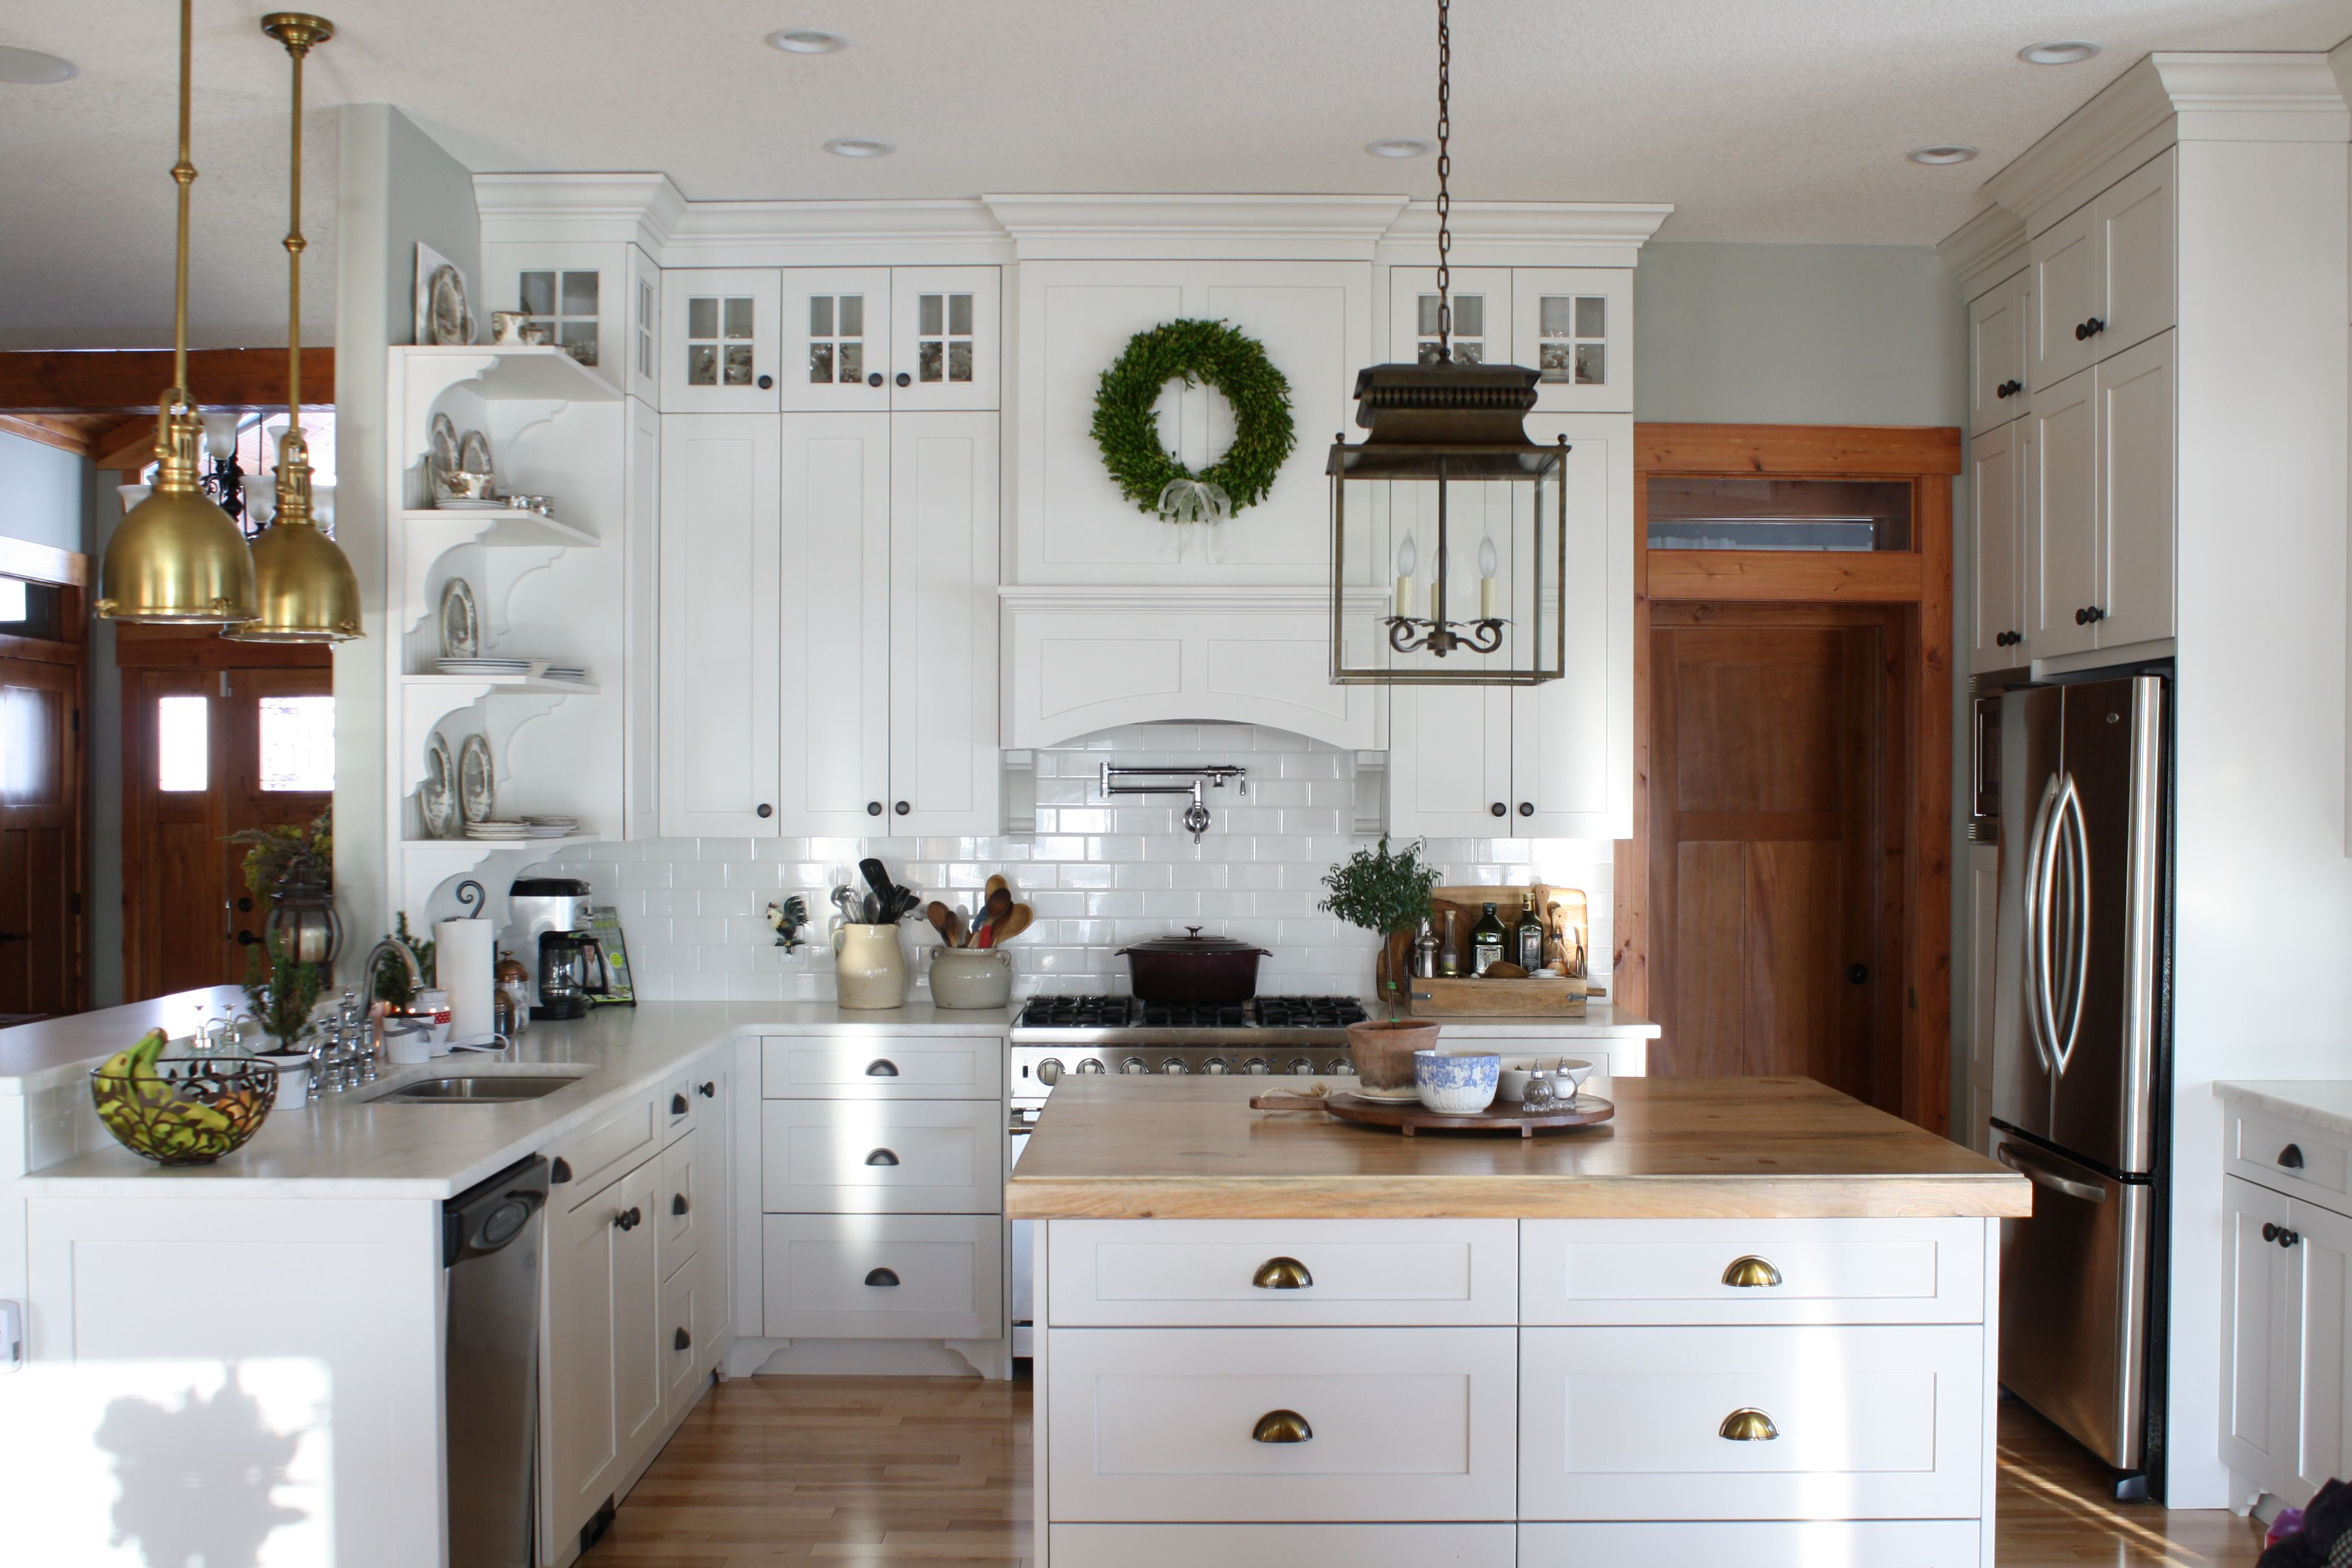 Canadian cottage holly mathis interiors kitchen